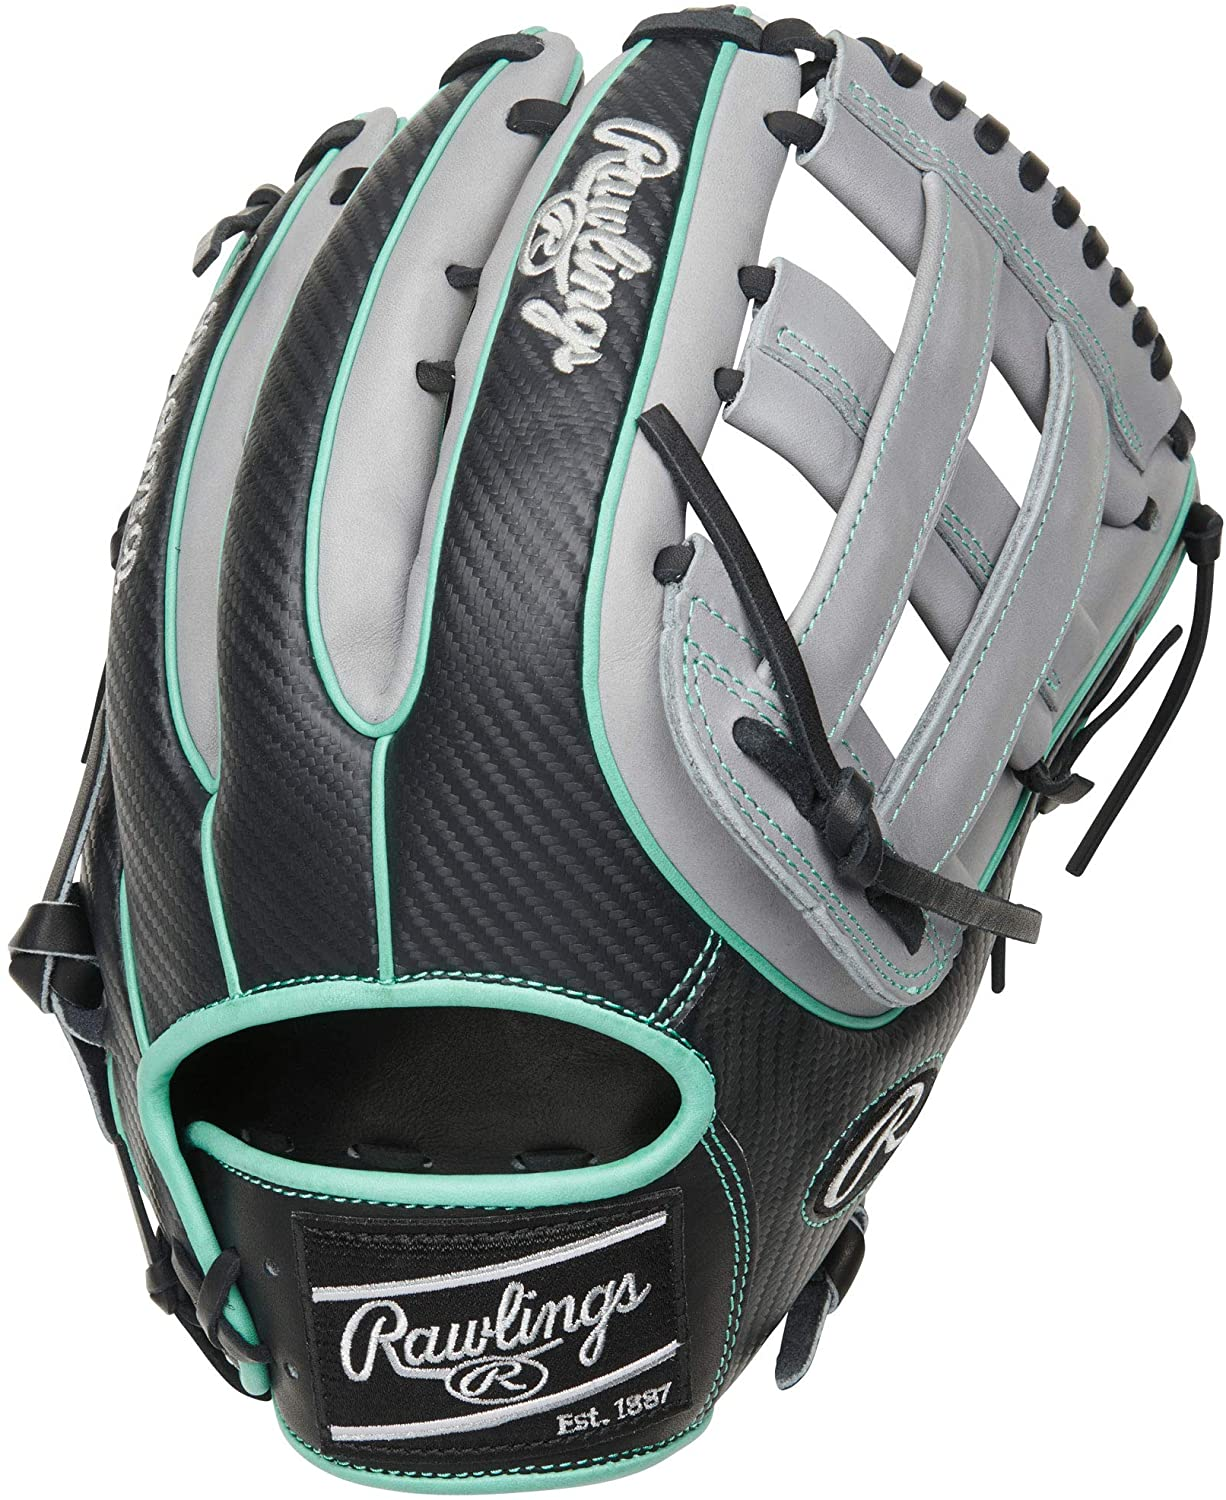 rawlings-heart-of-hide-12-75-baseball-glove-h-web-grey-right-hand-throw PRO3319-6BCF  083321702594 <span>You'll have the fastest backhand glove in the game with the